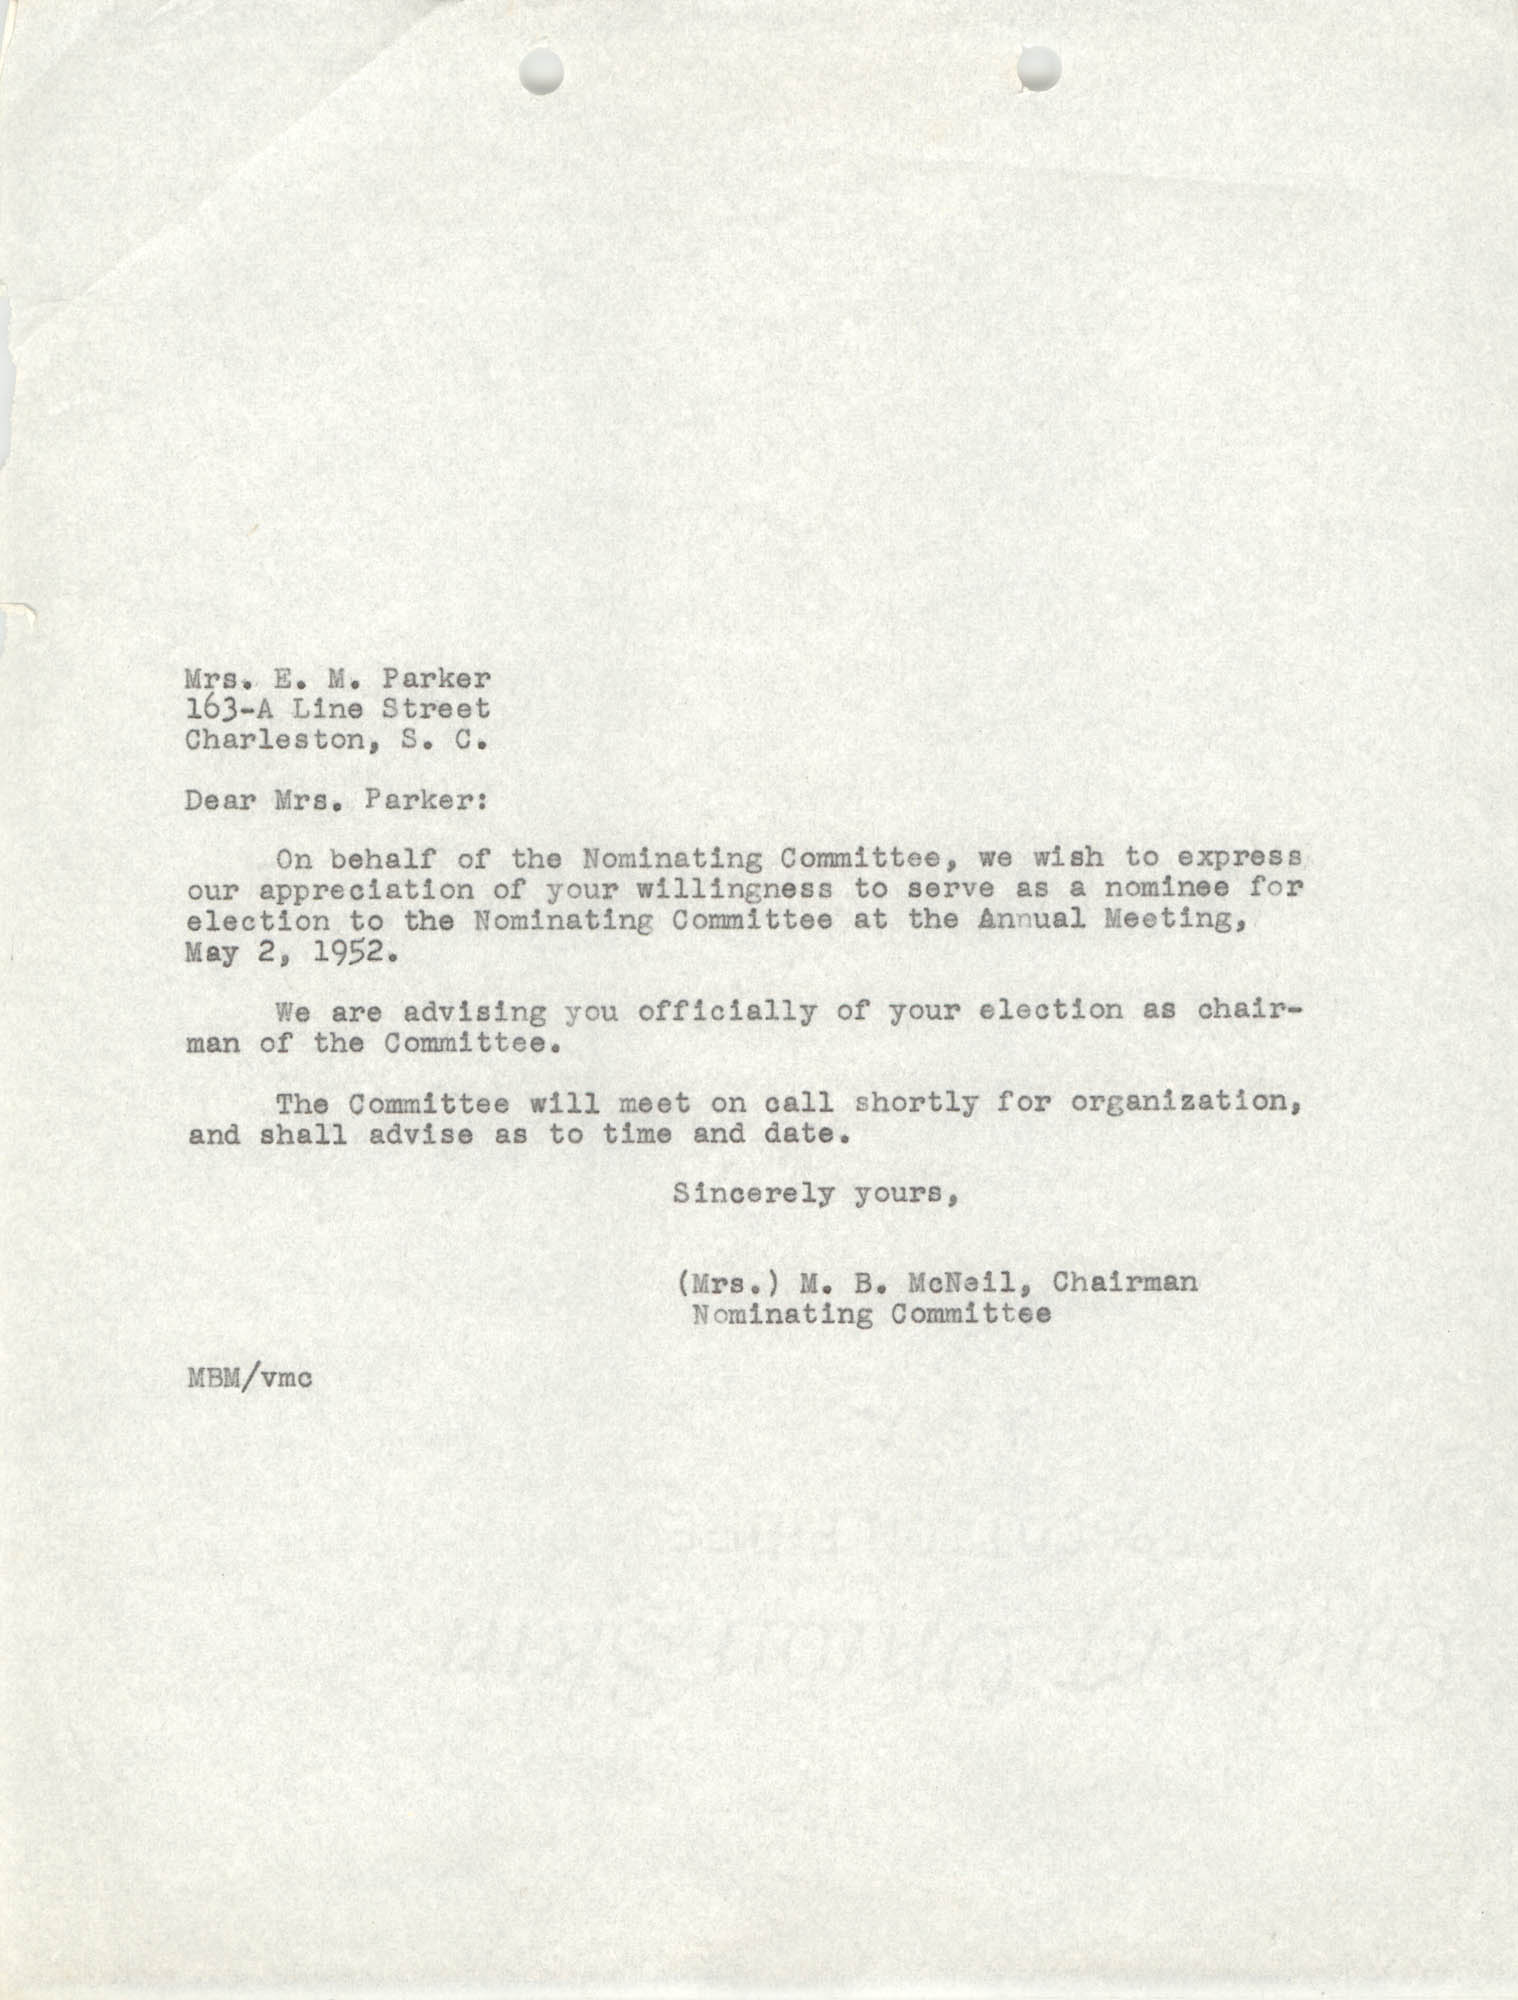 Letter from M. B. McNeil to E. M. Parker, May 7, 1952